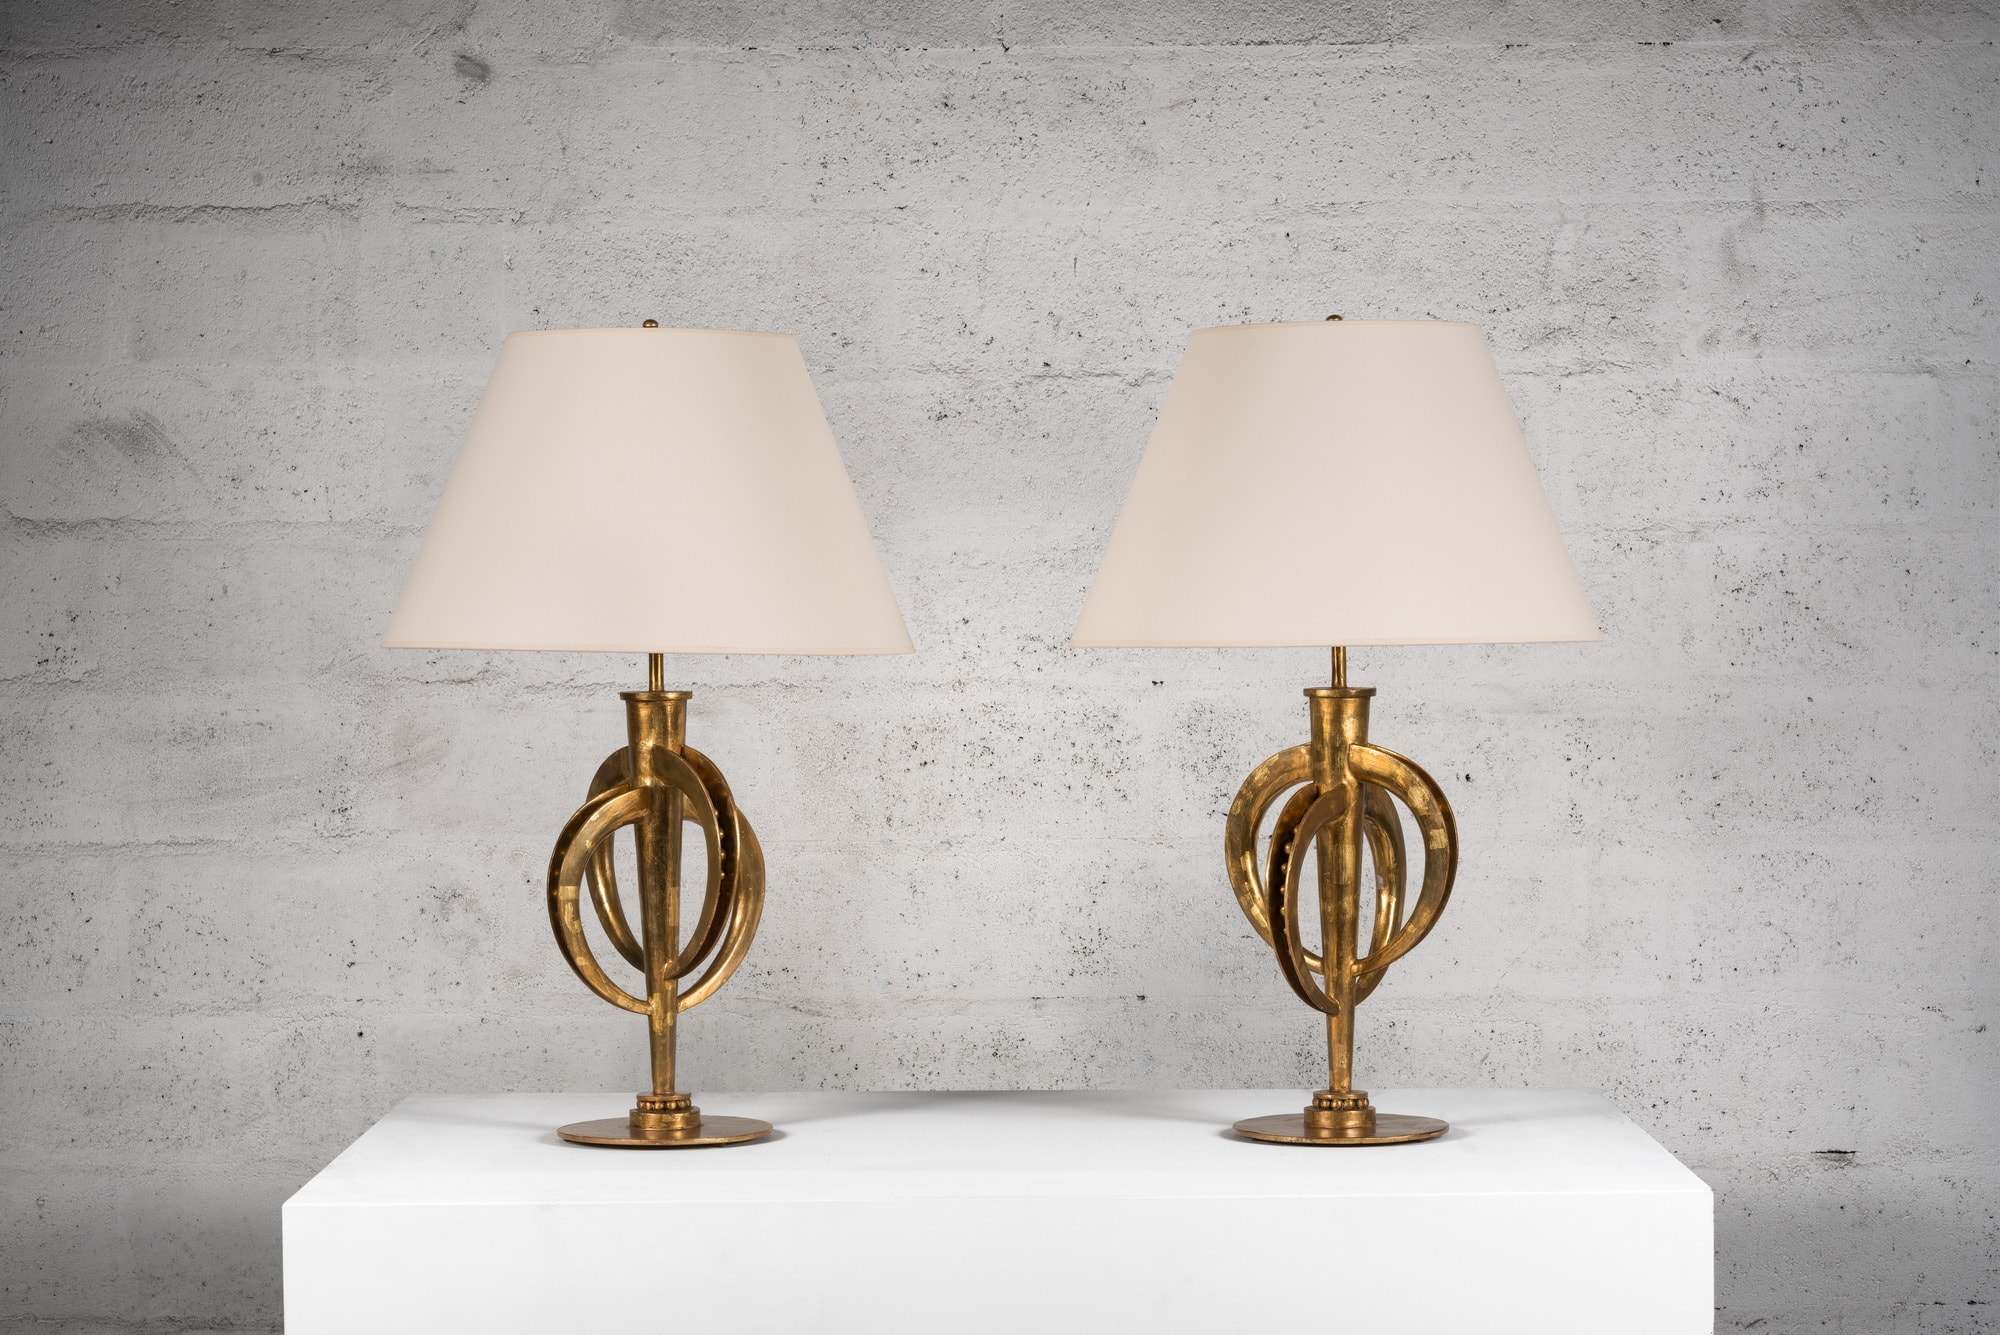 Marc Nicolas Du Plantier, Exceptional pair of lamps, vue 01